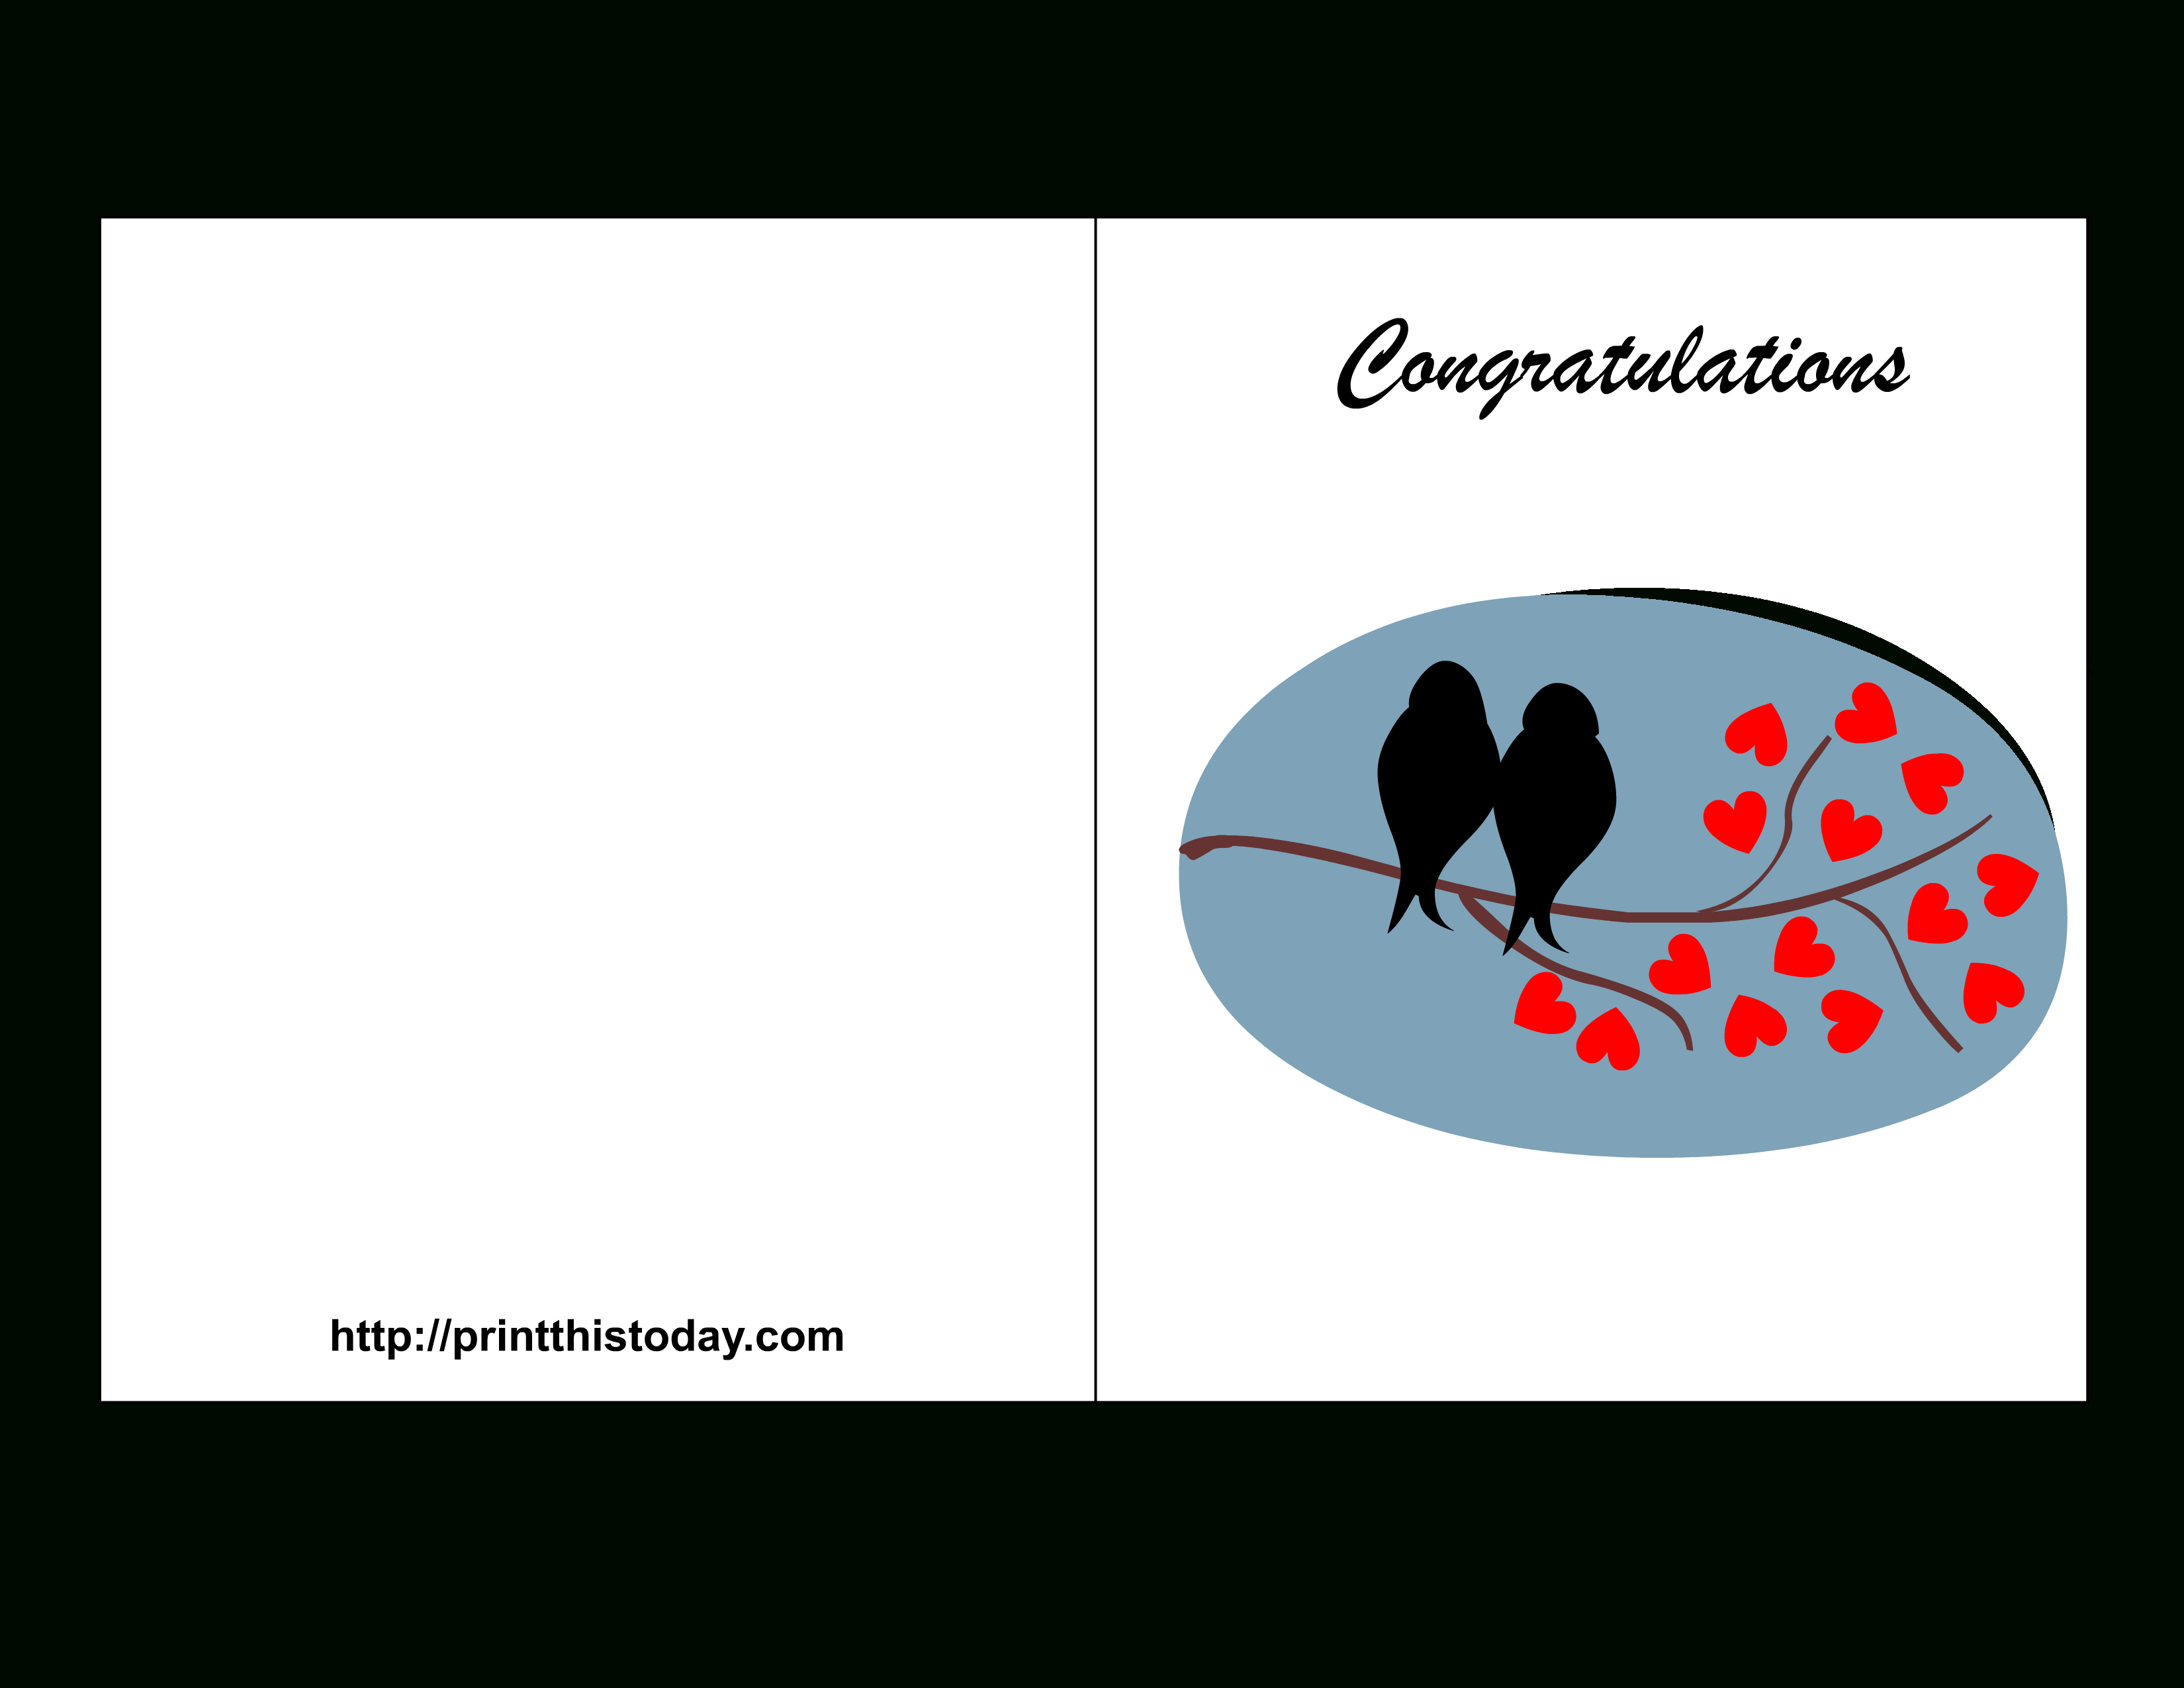 Congratulation Cards To Print - Demir.iso-Consulting.co - Wedding Wish Cards Printable Free